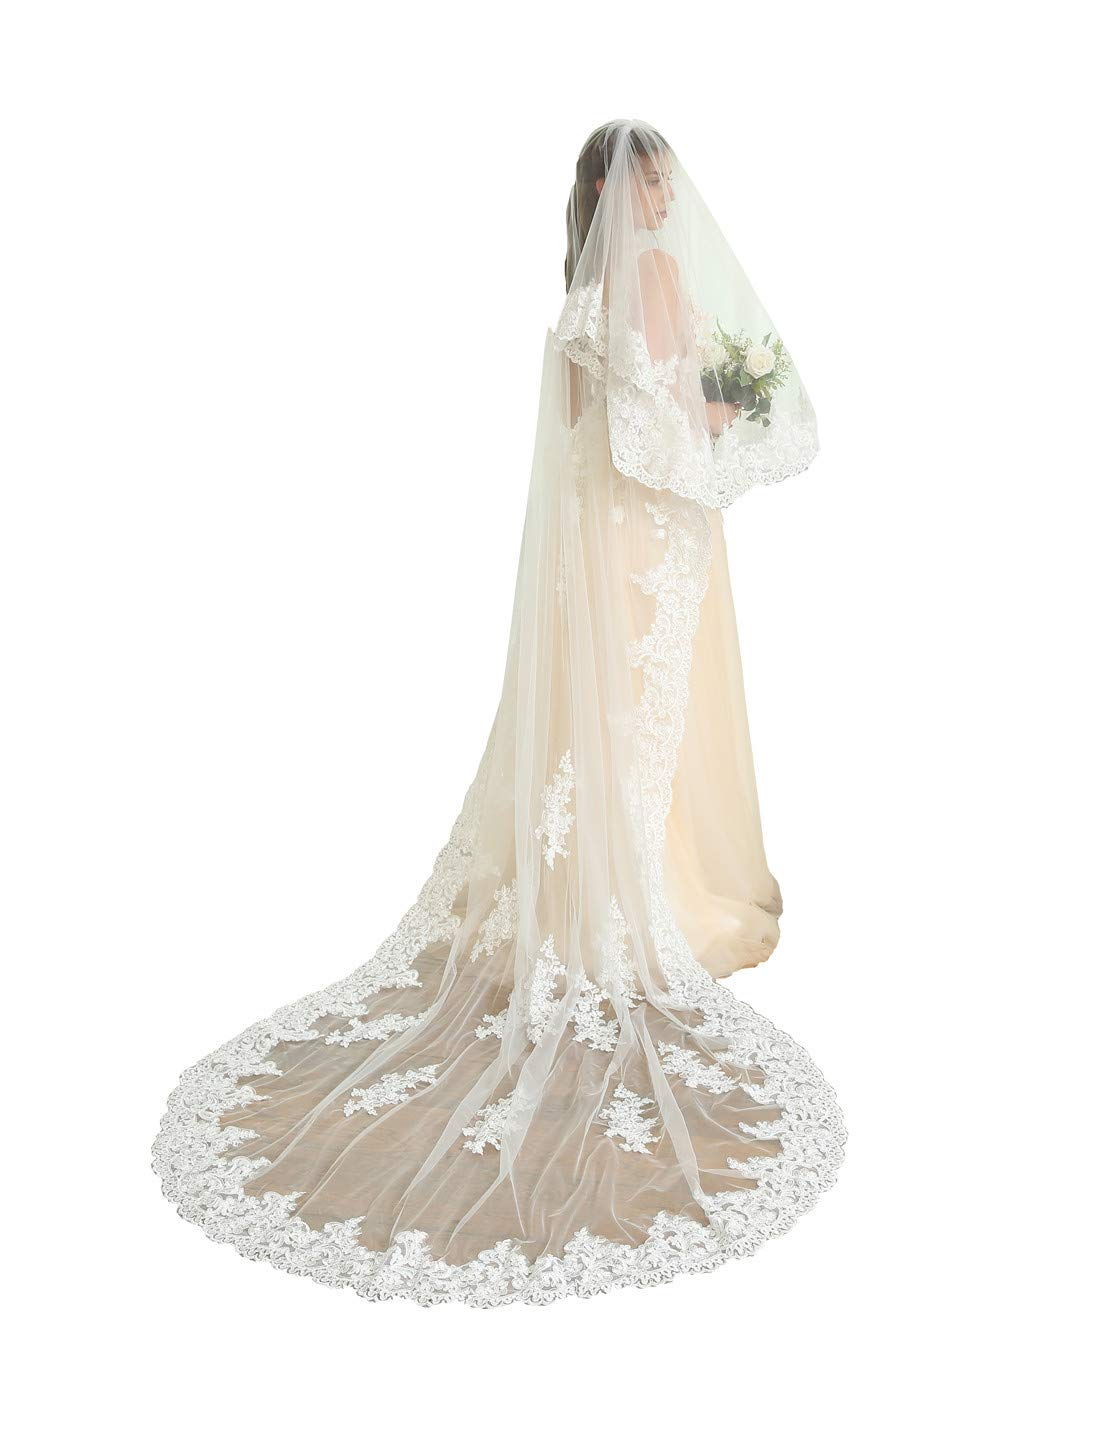 Kelaixiang 2T 2 Tiers Lace Edge Wedding Veil Cathedral Length (Ivory, 4m length)